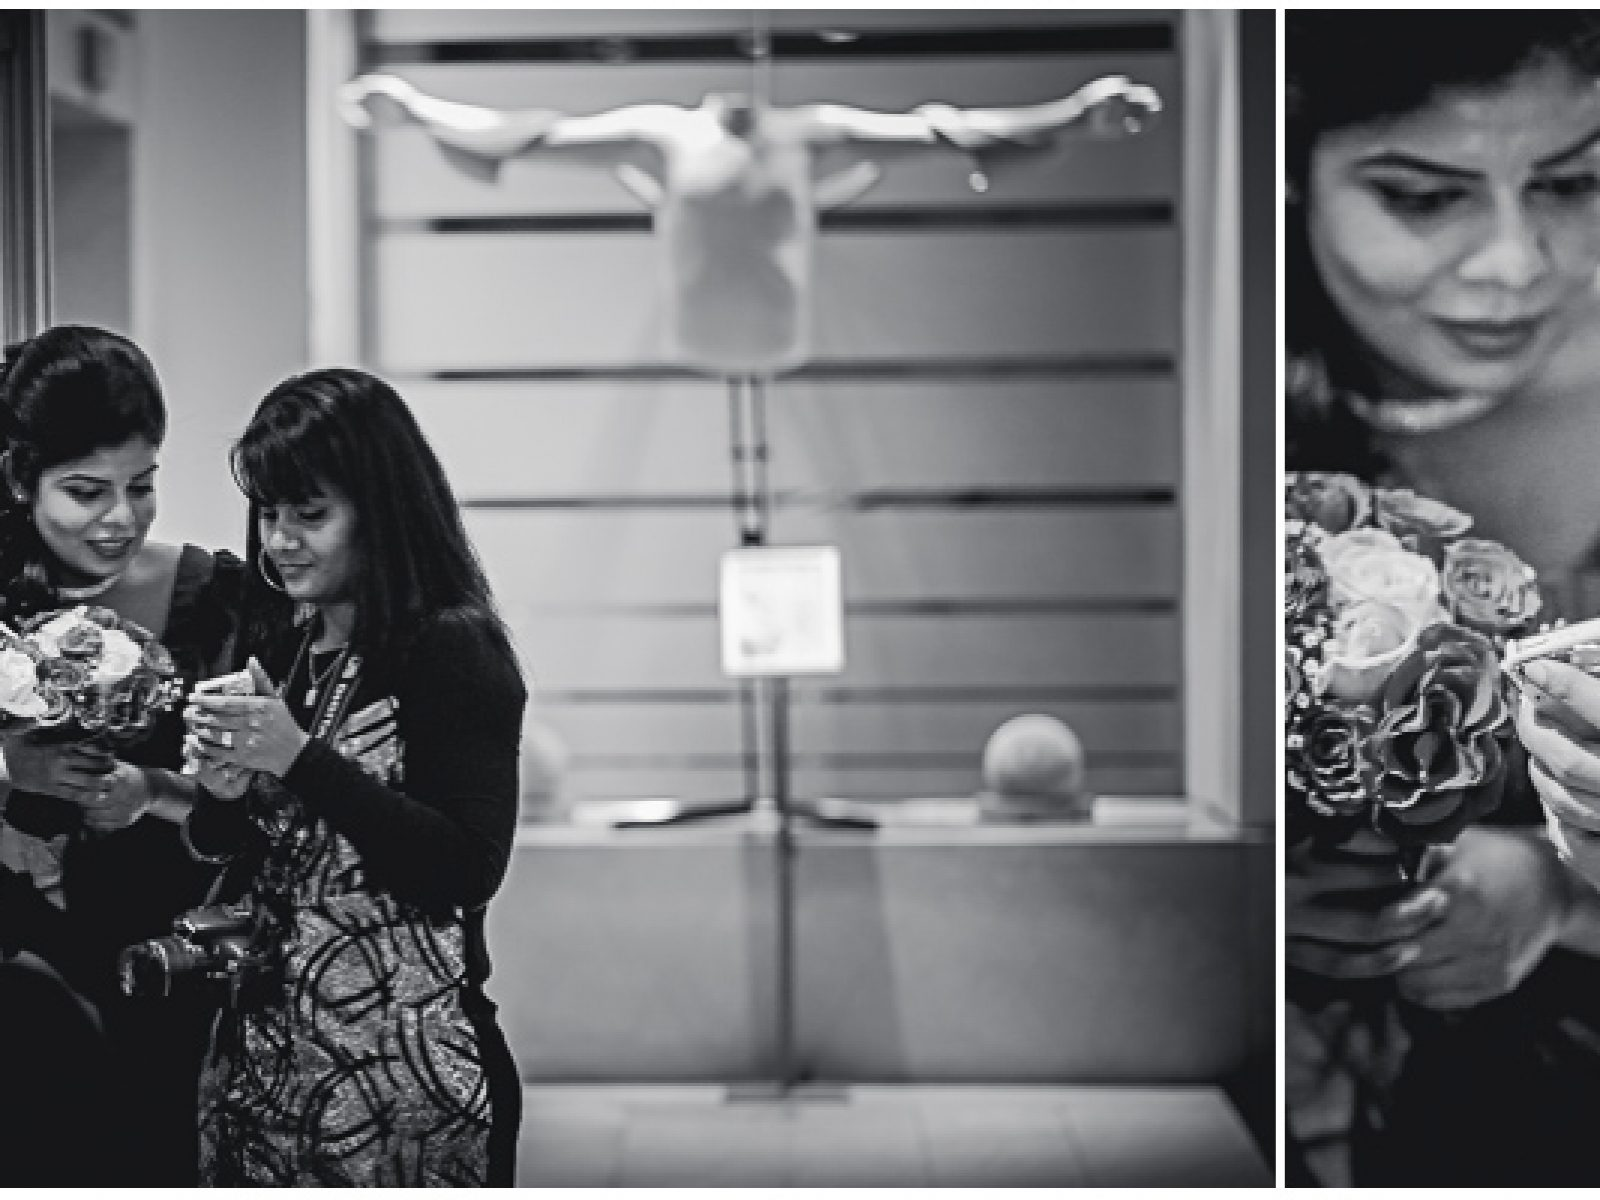 251 1600x1200 - Darshani and Anthony - wedding photographer in London